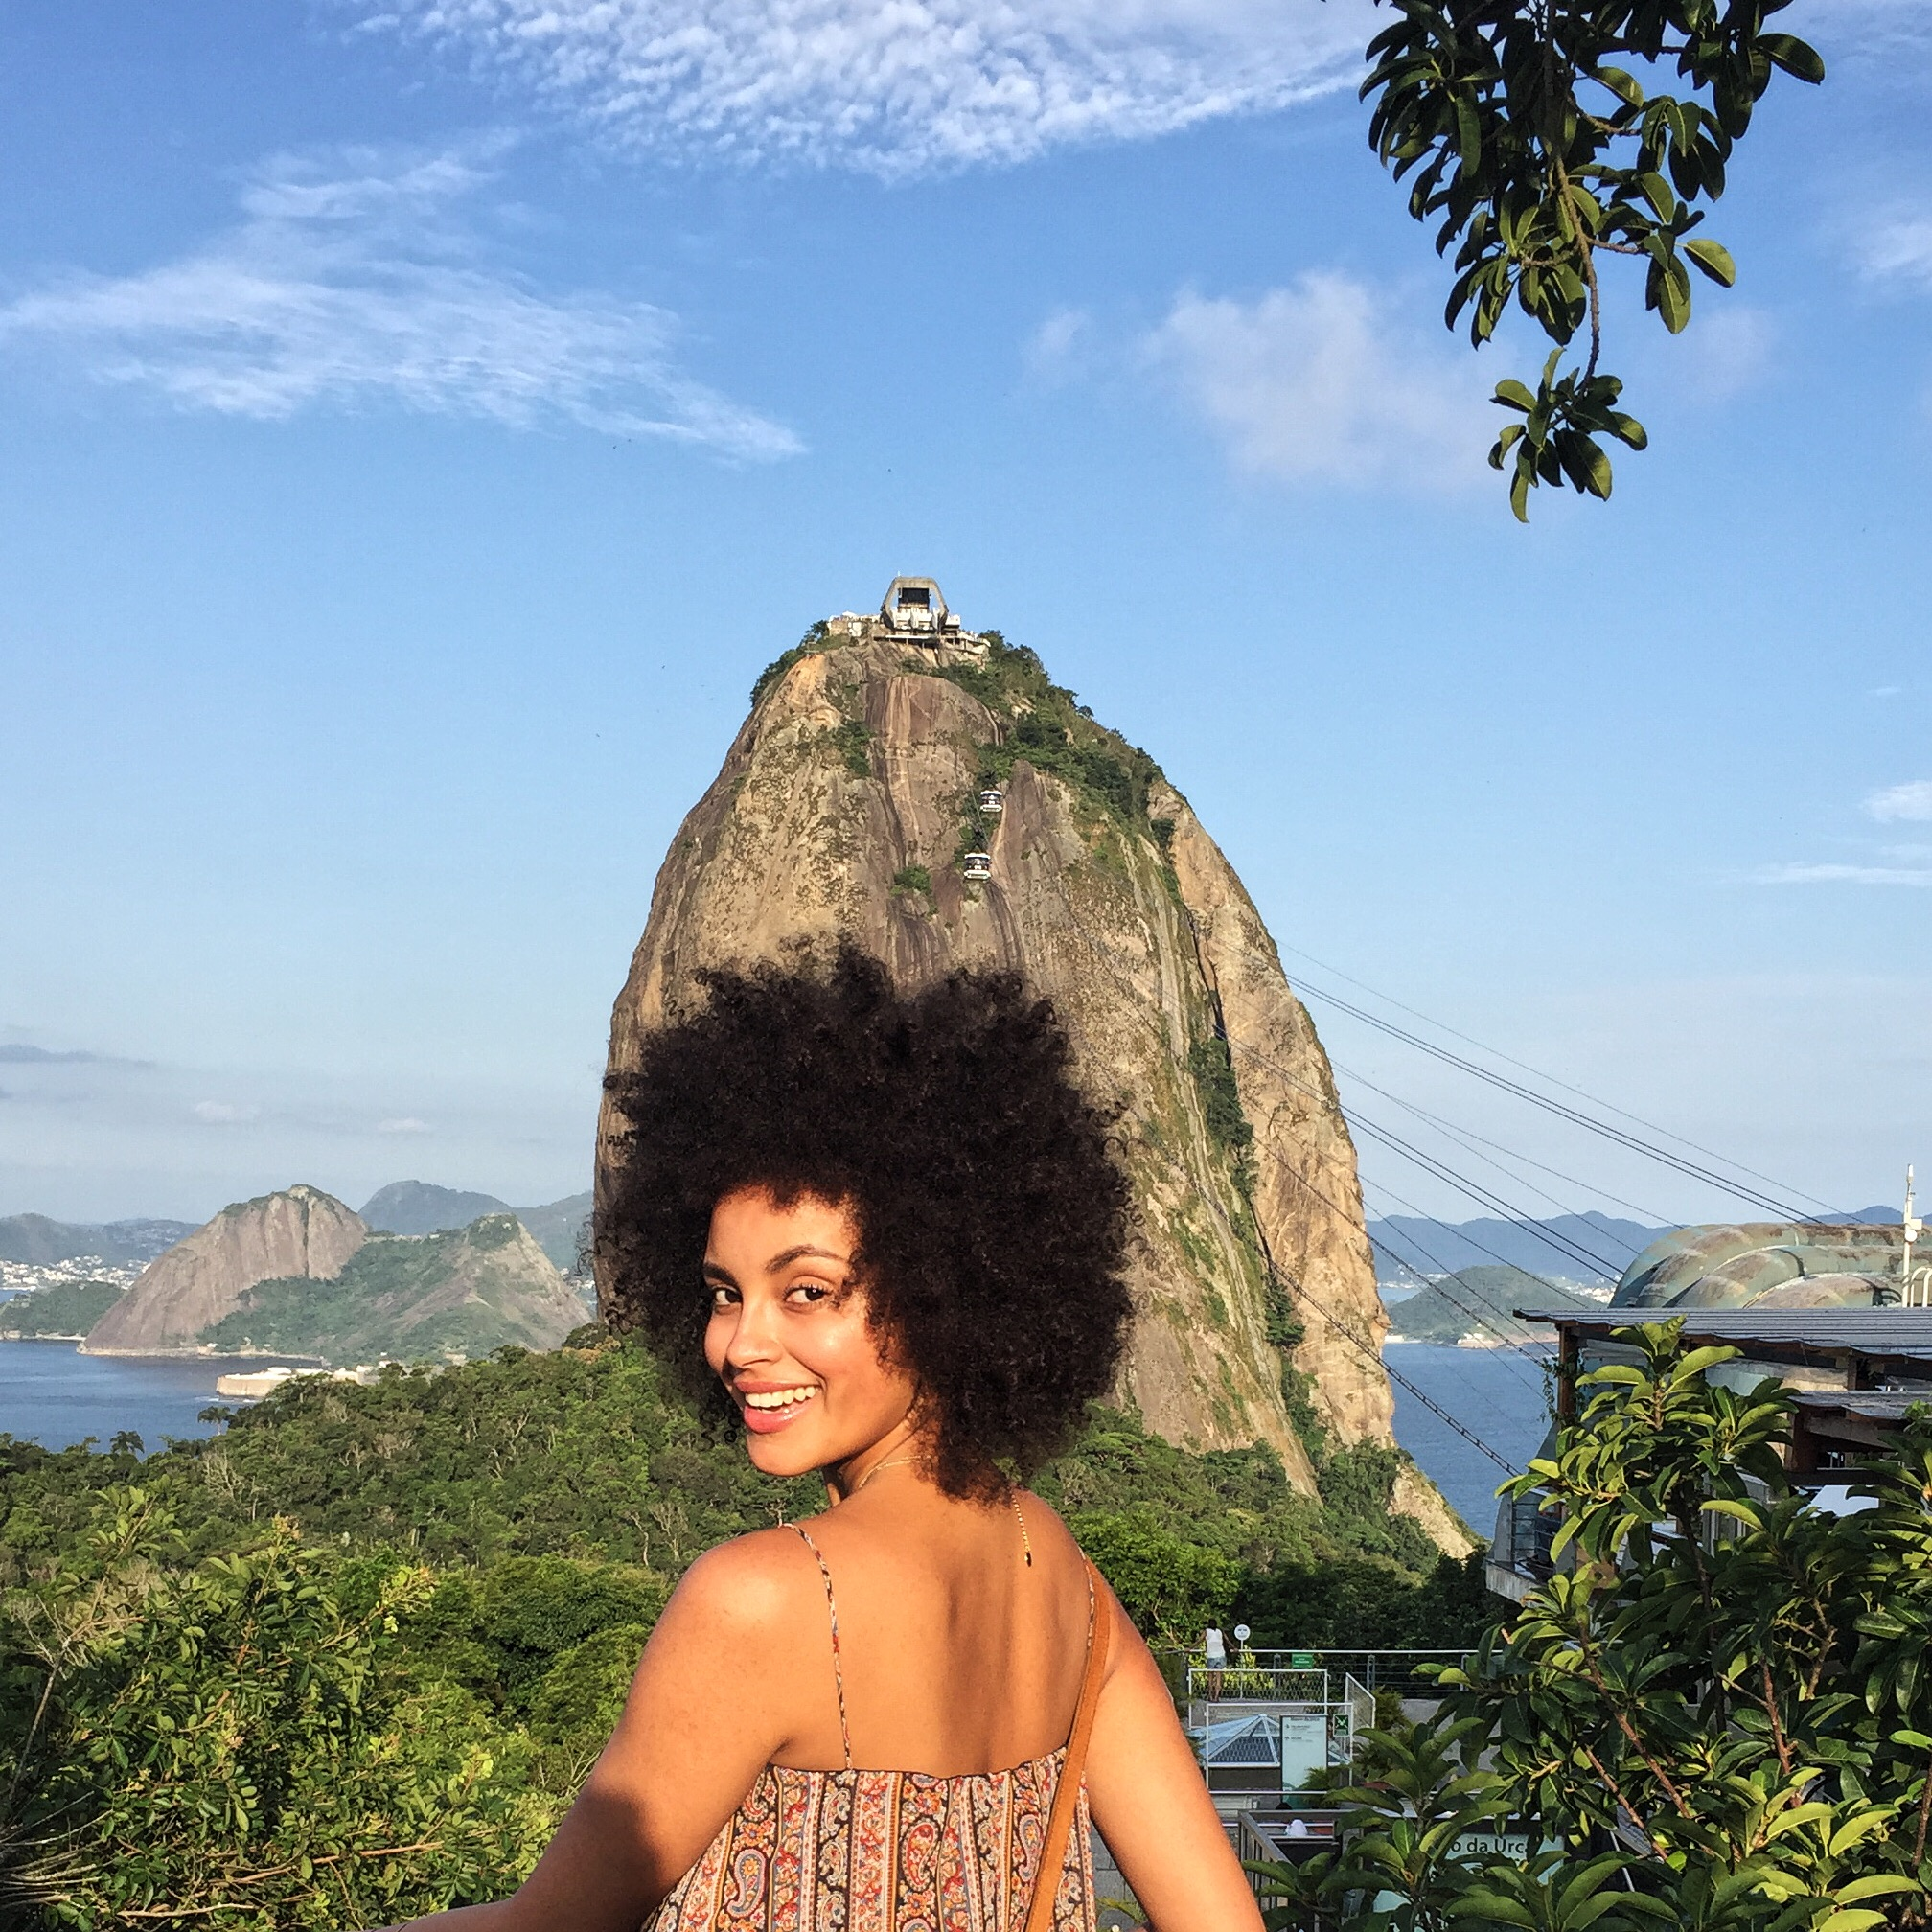 At the iconic Sugar Loaf!